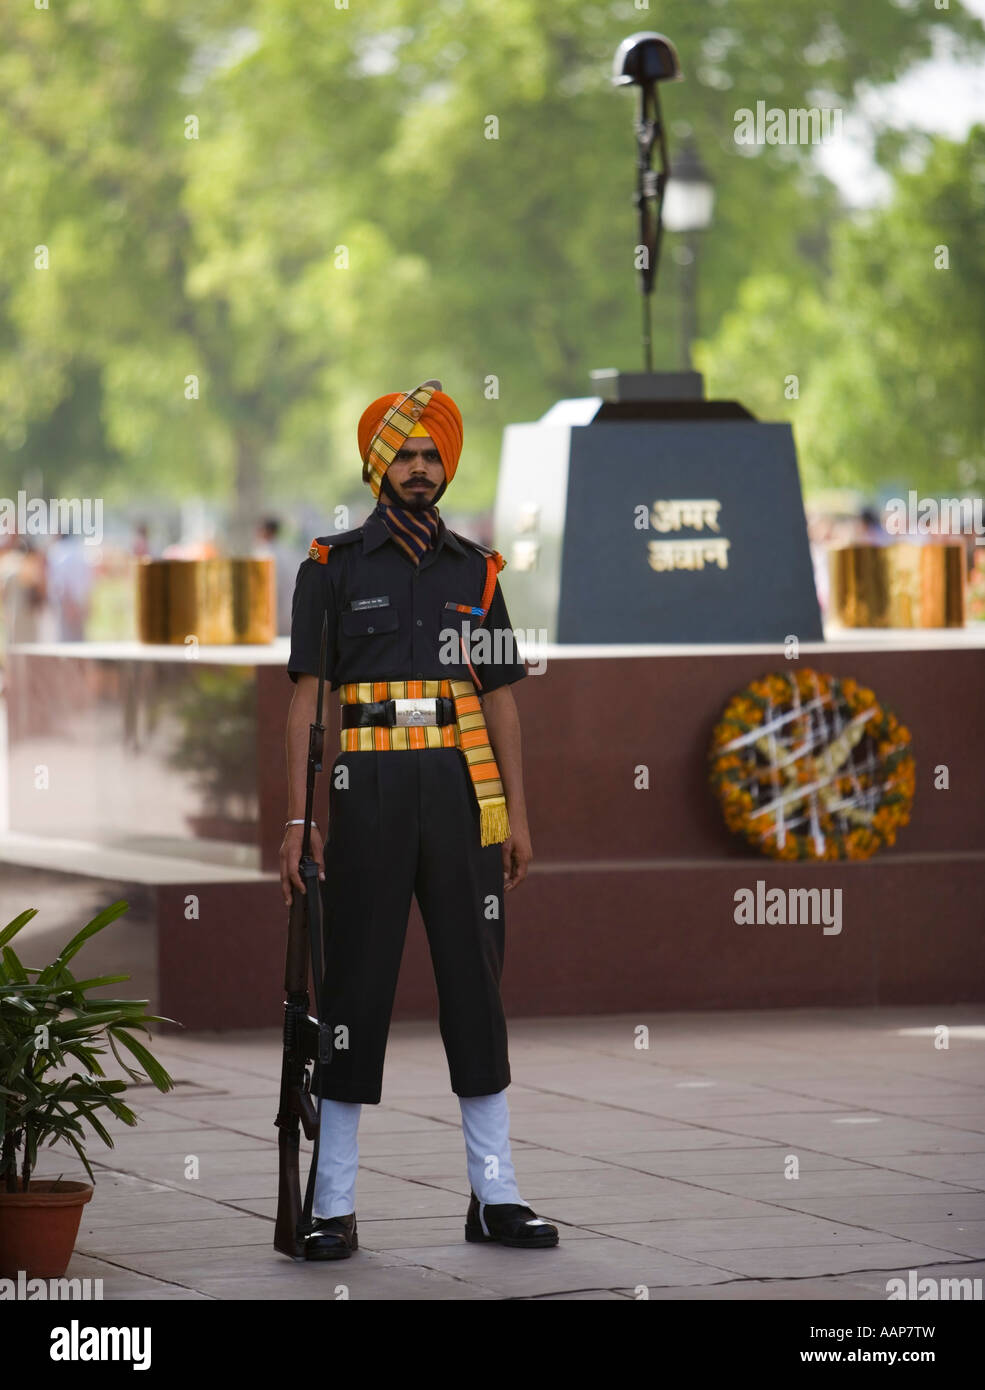 Amar jawan jyoti india gate stock photos amar jawan jyoti india a soldier standing guard at the amar jawan jyoti the flame of the immortal warrior altavistaventures Choice Image